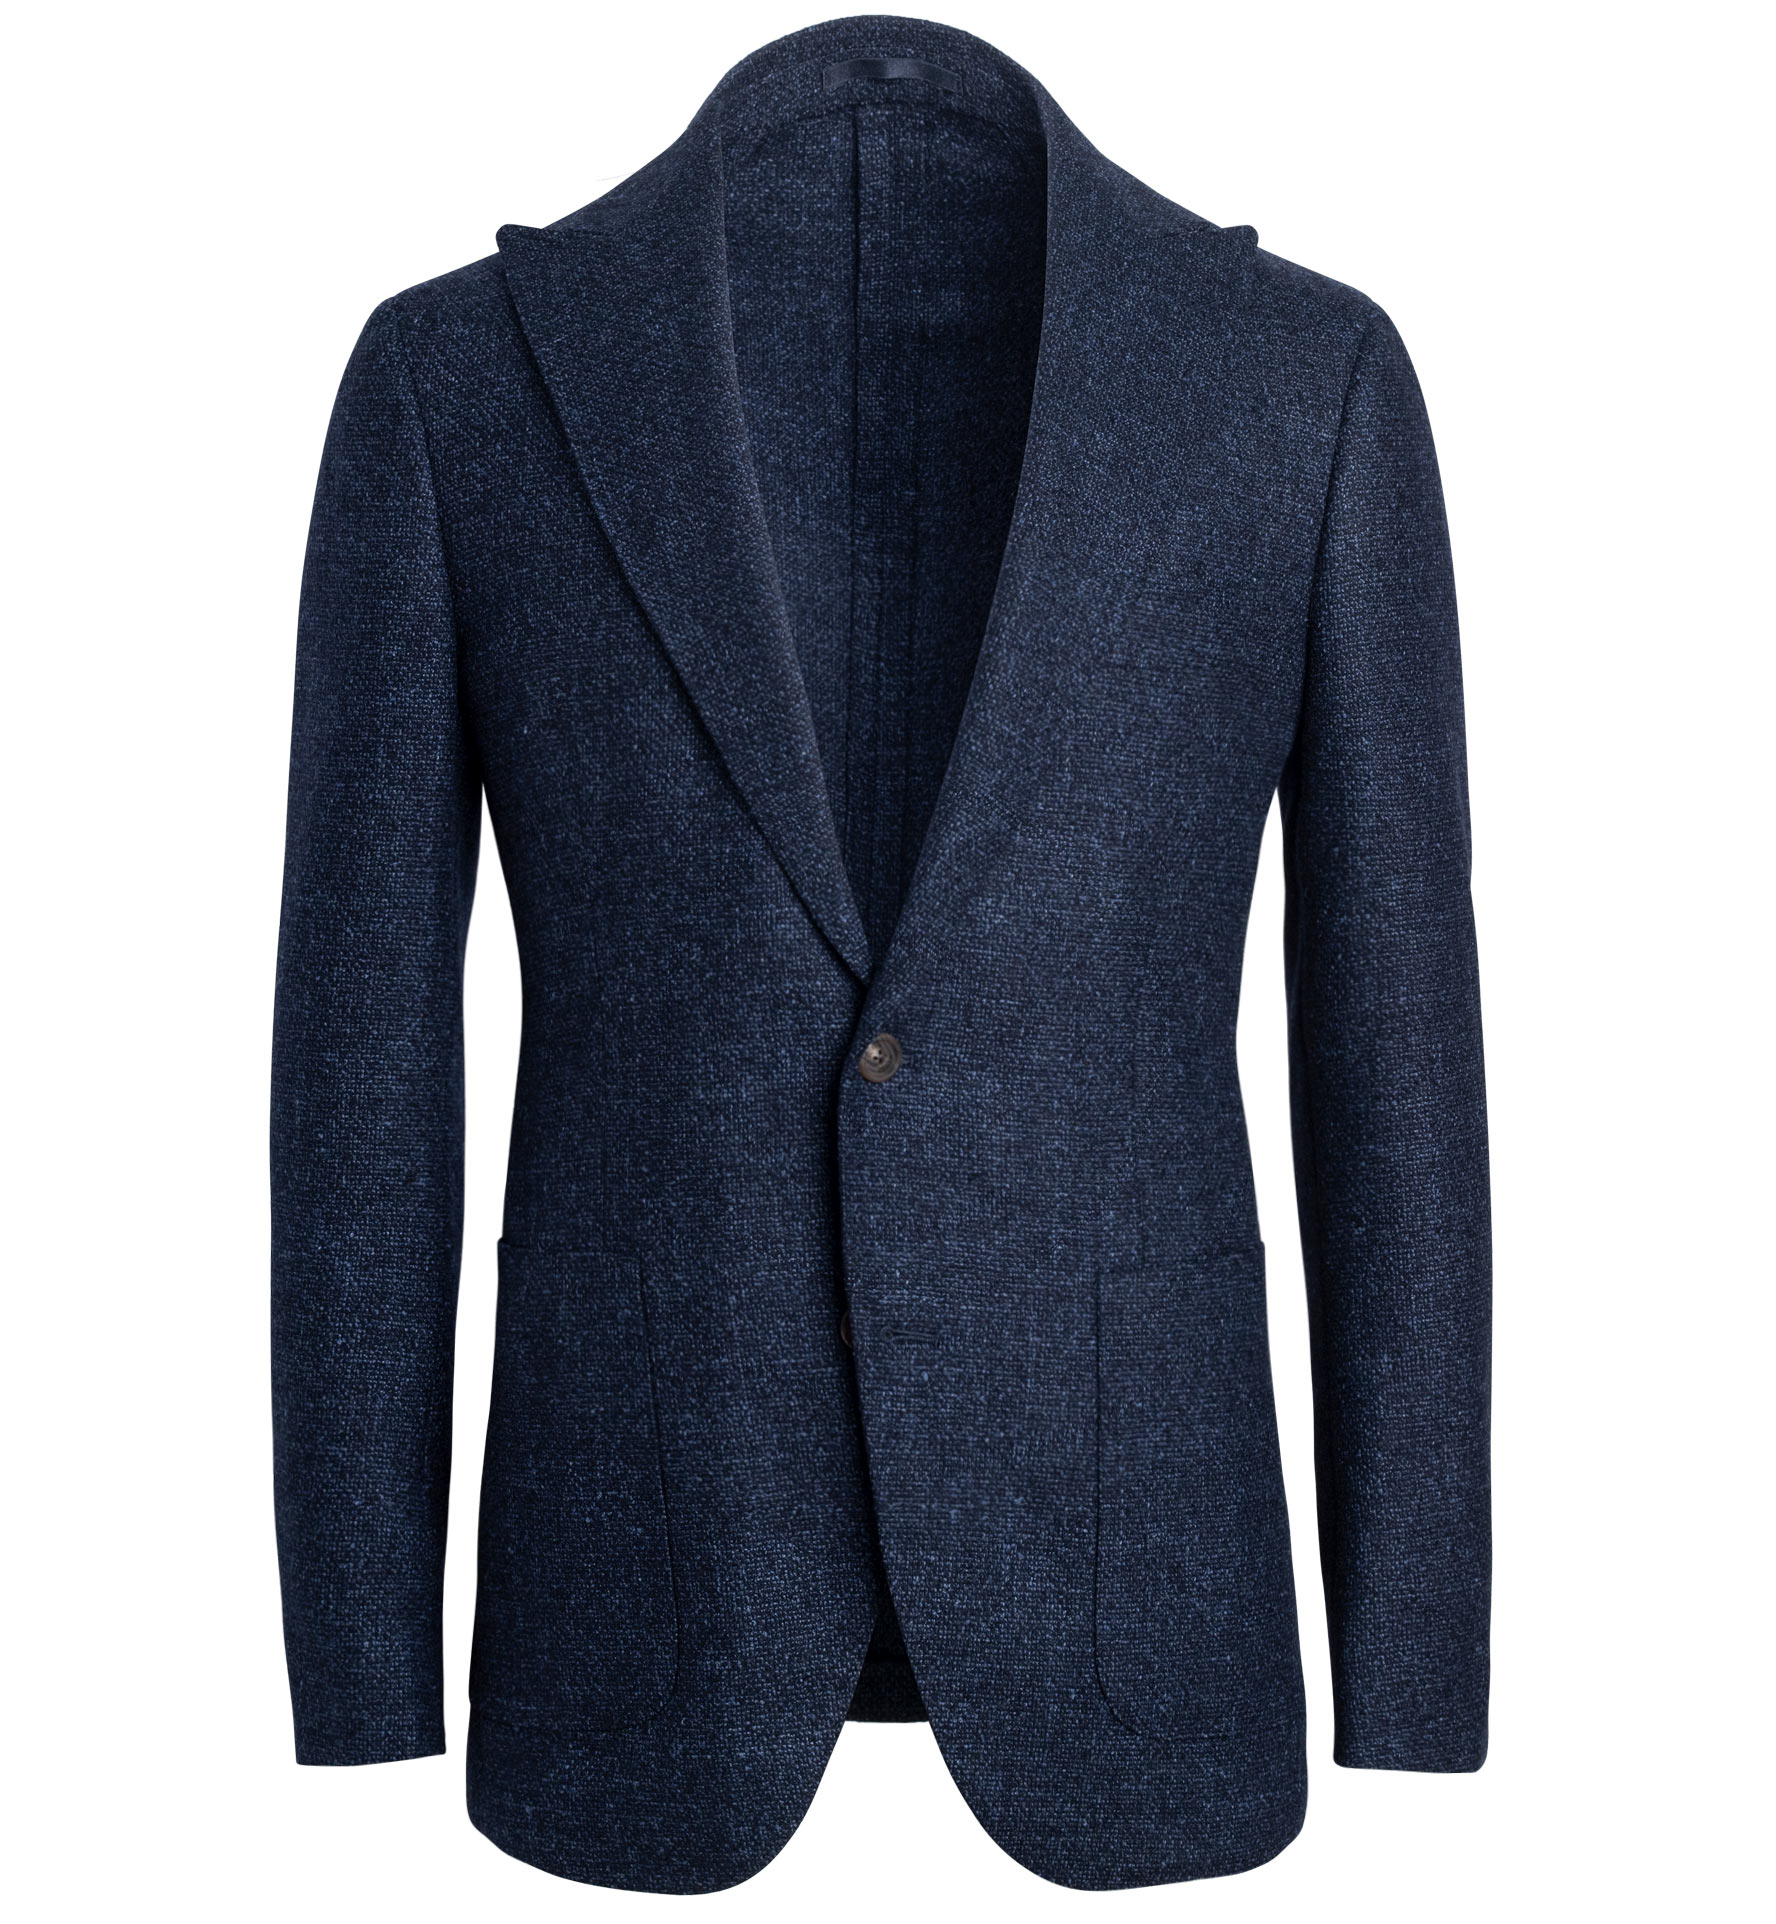 Zoom Image of Bedford Navy Textured Wool Blend Jacket